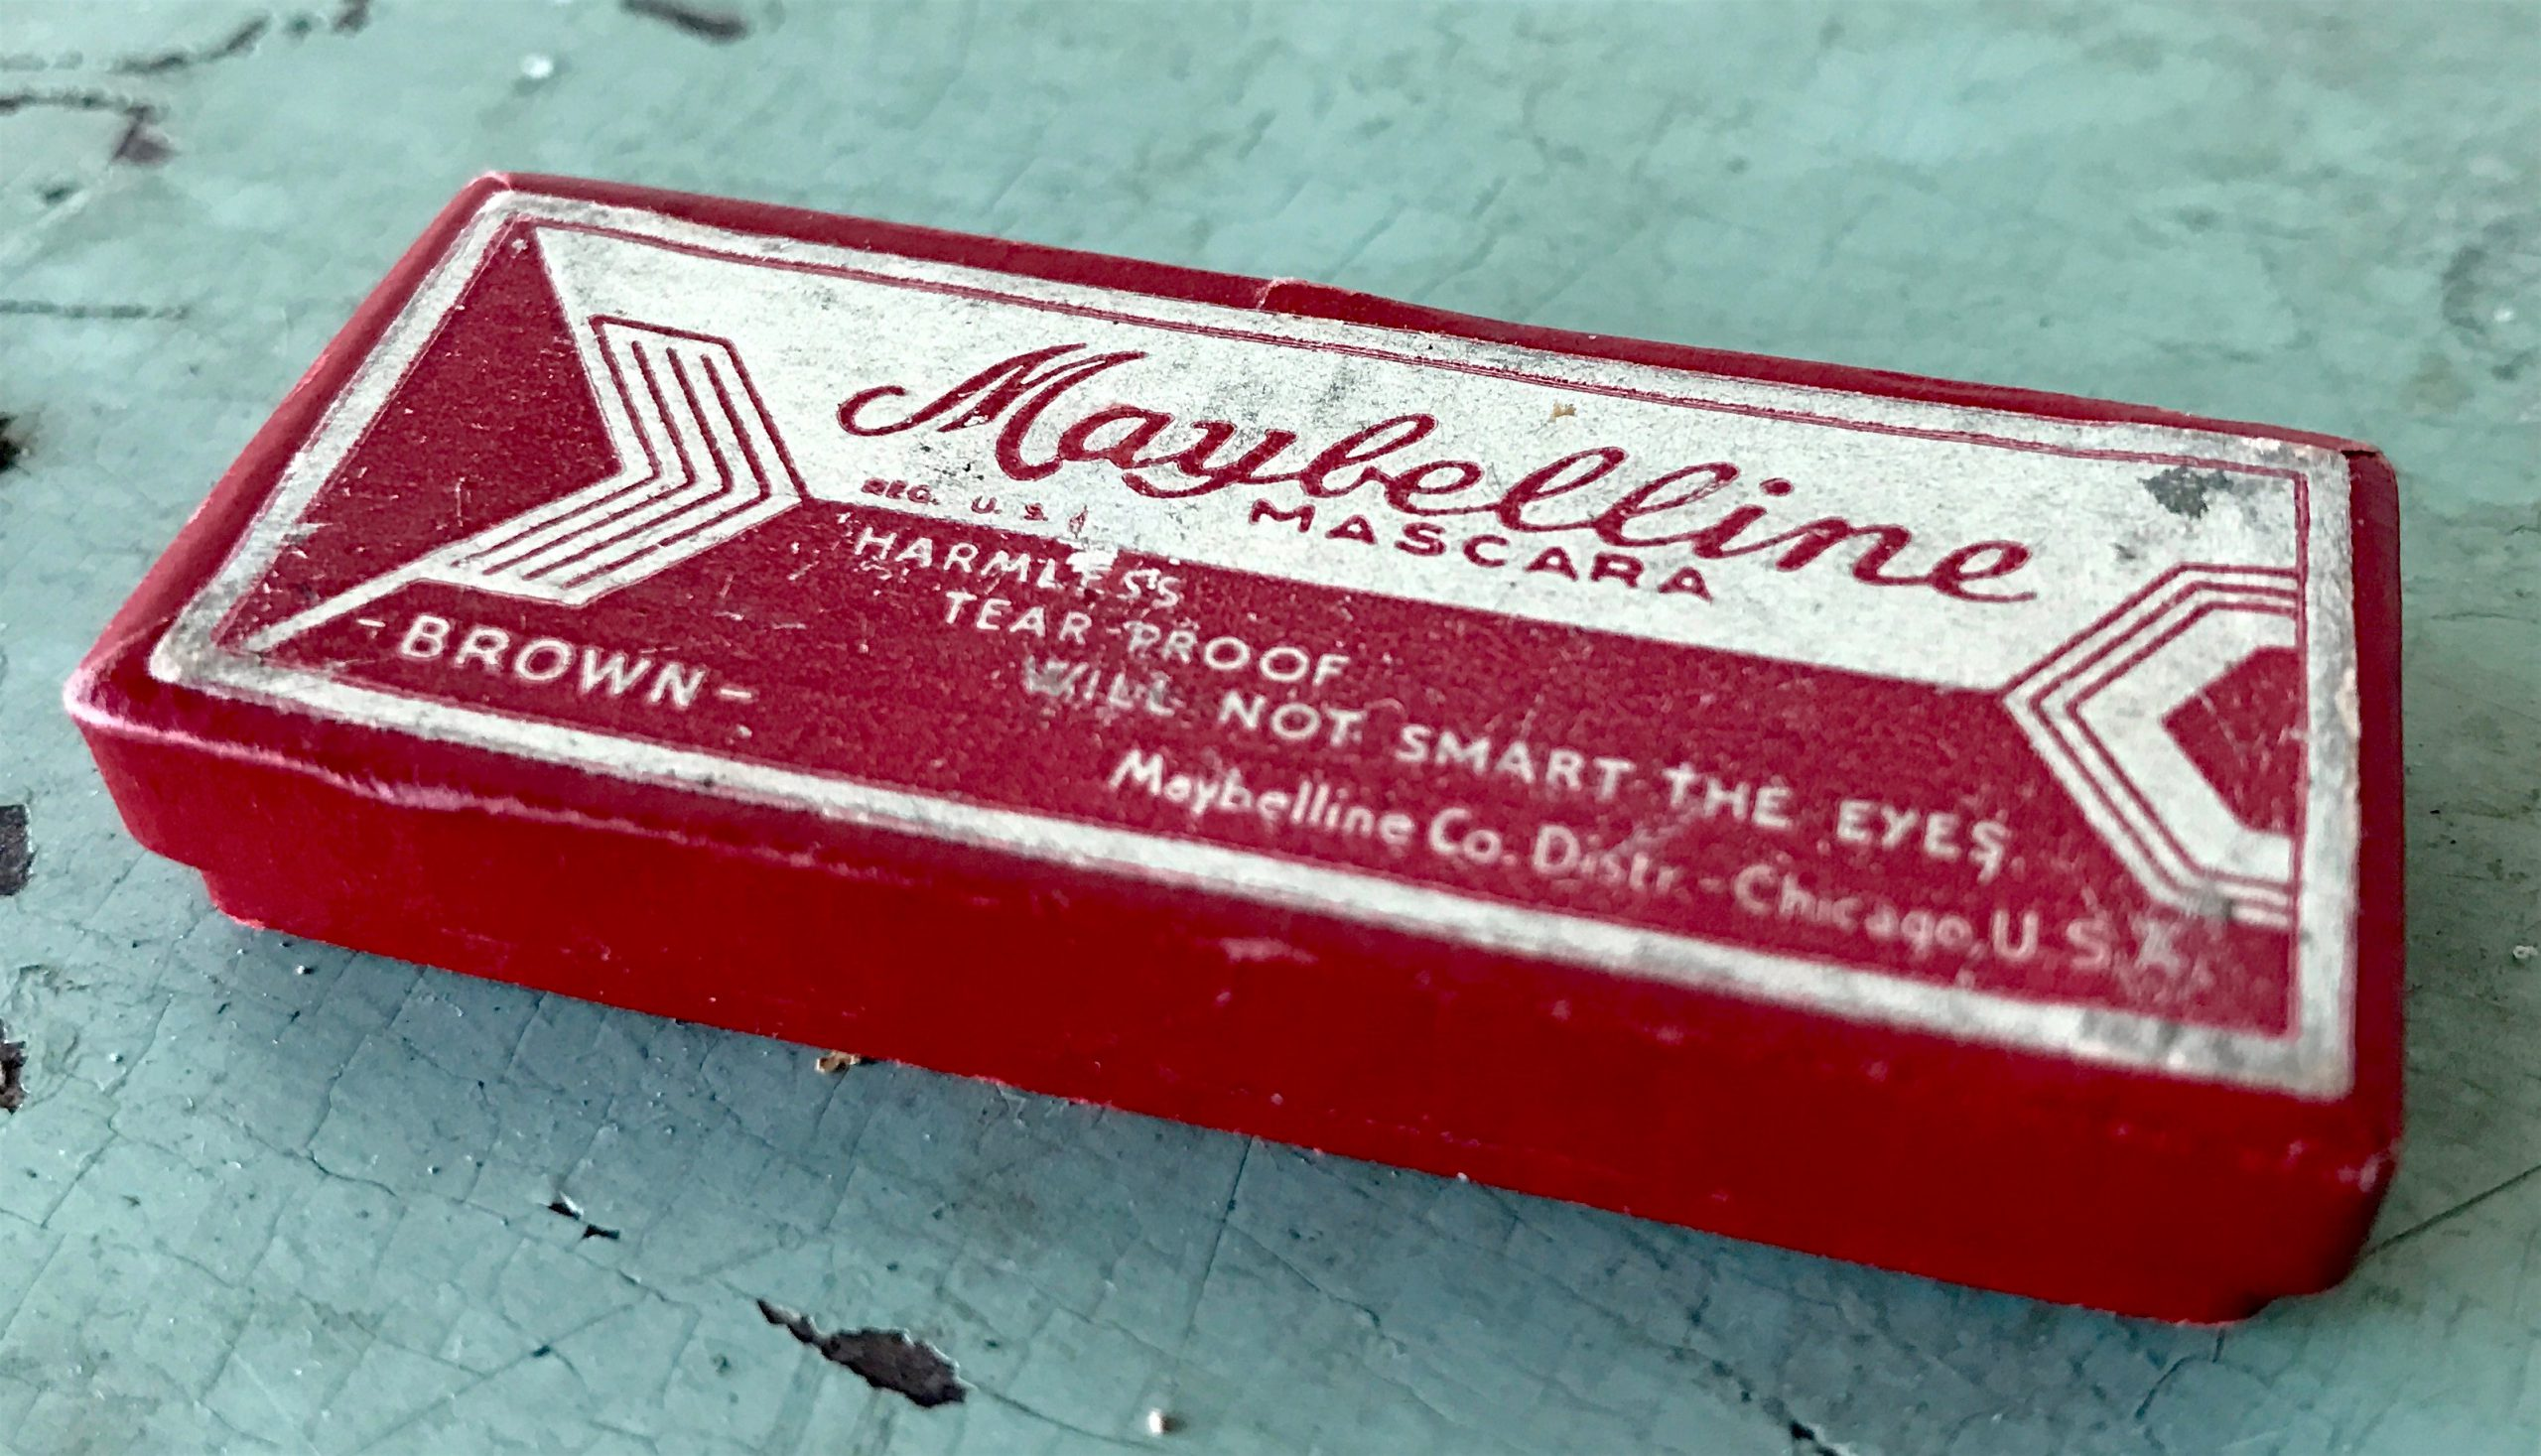 Maybelline Company, est. 1915